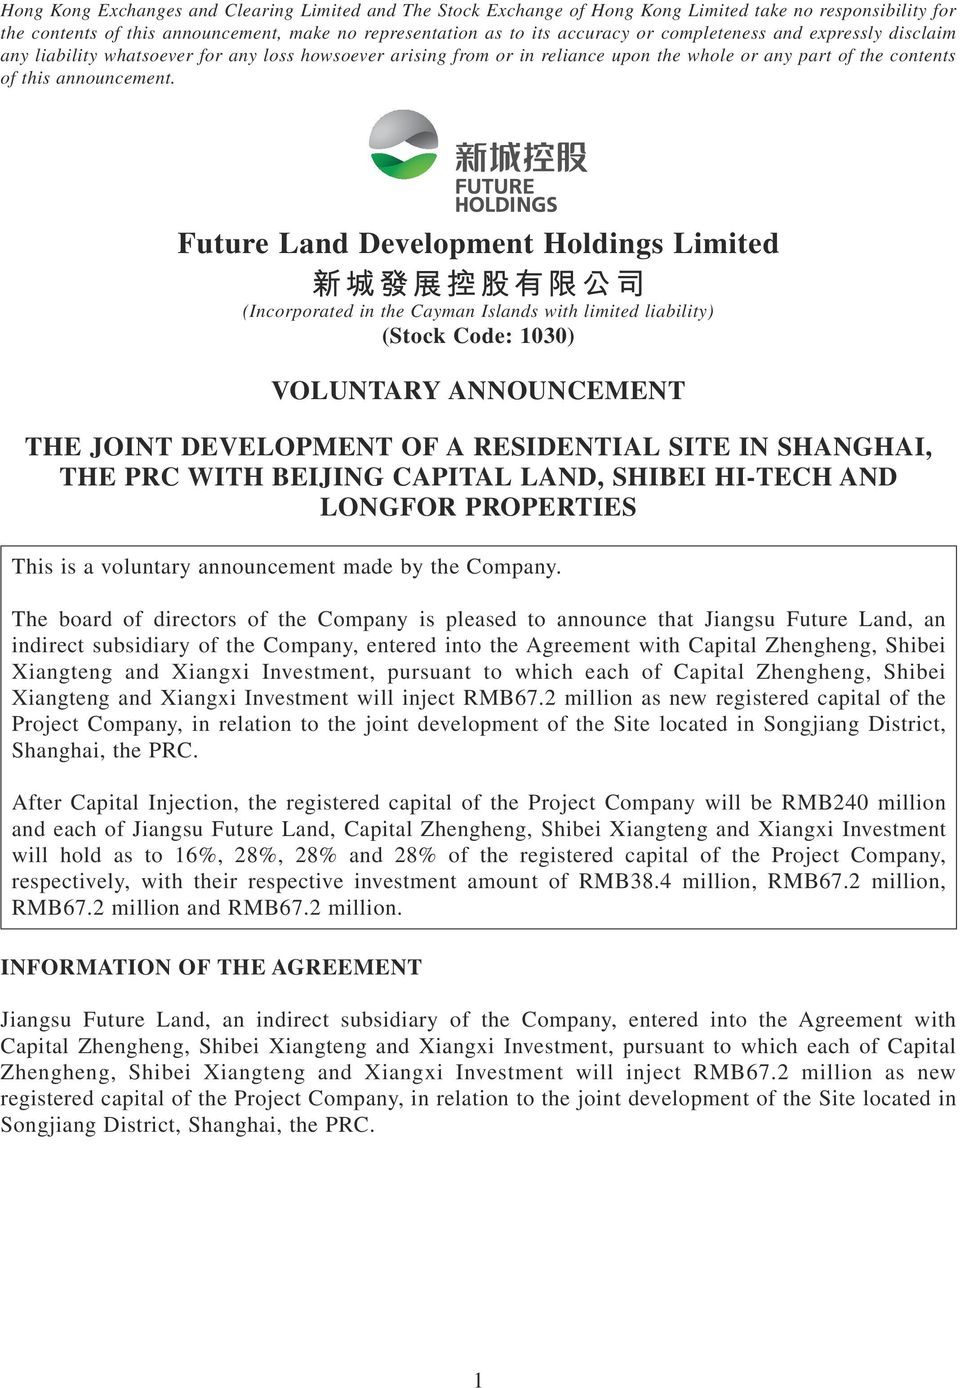 Future Land Development Holdings Limited (Incorporated in the Cayman Islands with limited liability) (Stock Code: 1030) VOLUNTARY ANNOUNCEMENT THE JOINT DEVELOPMENT OF A RESIDENTIAL SITE IN SHANGHAI,